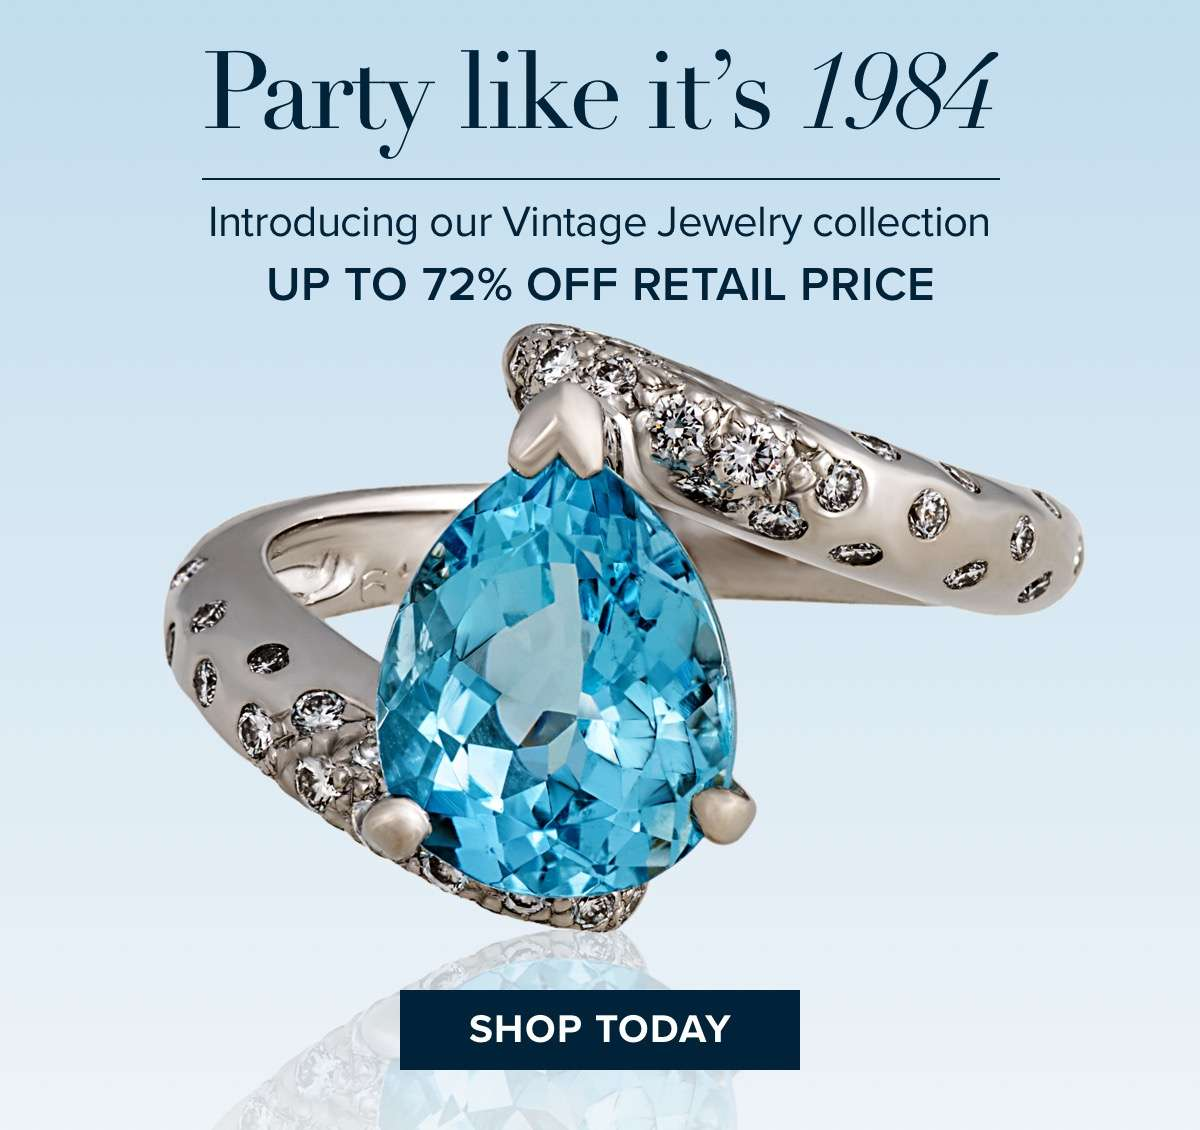 Vintage jewelry - up to 72% off retail price